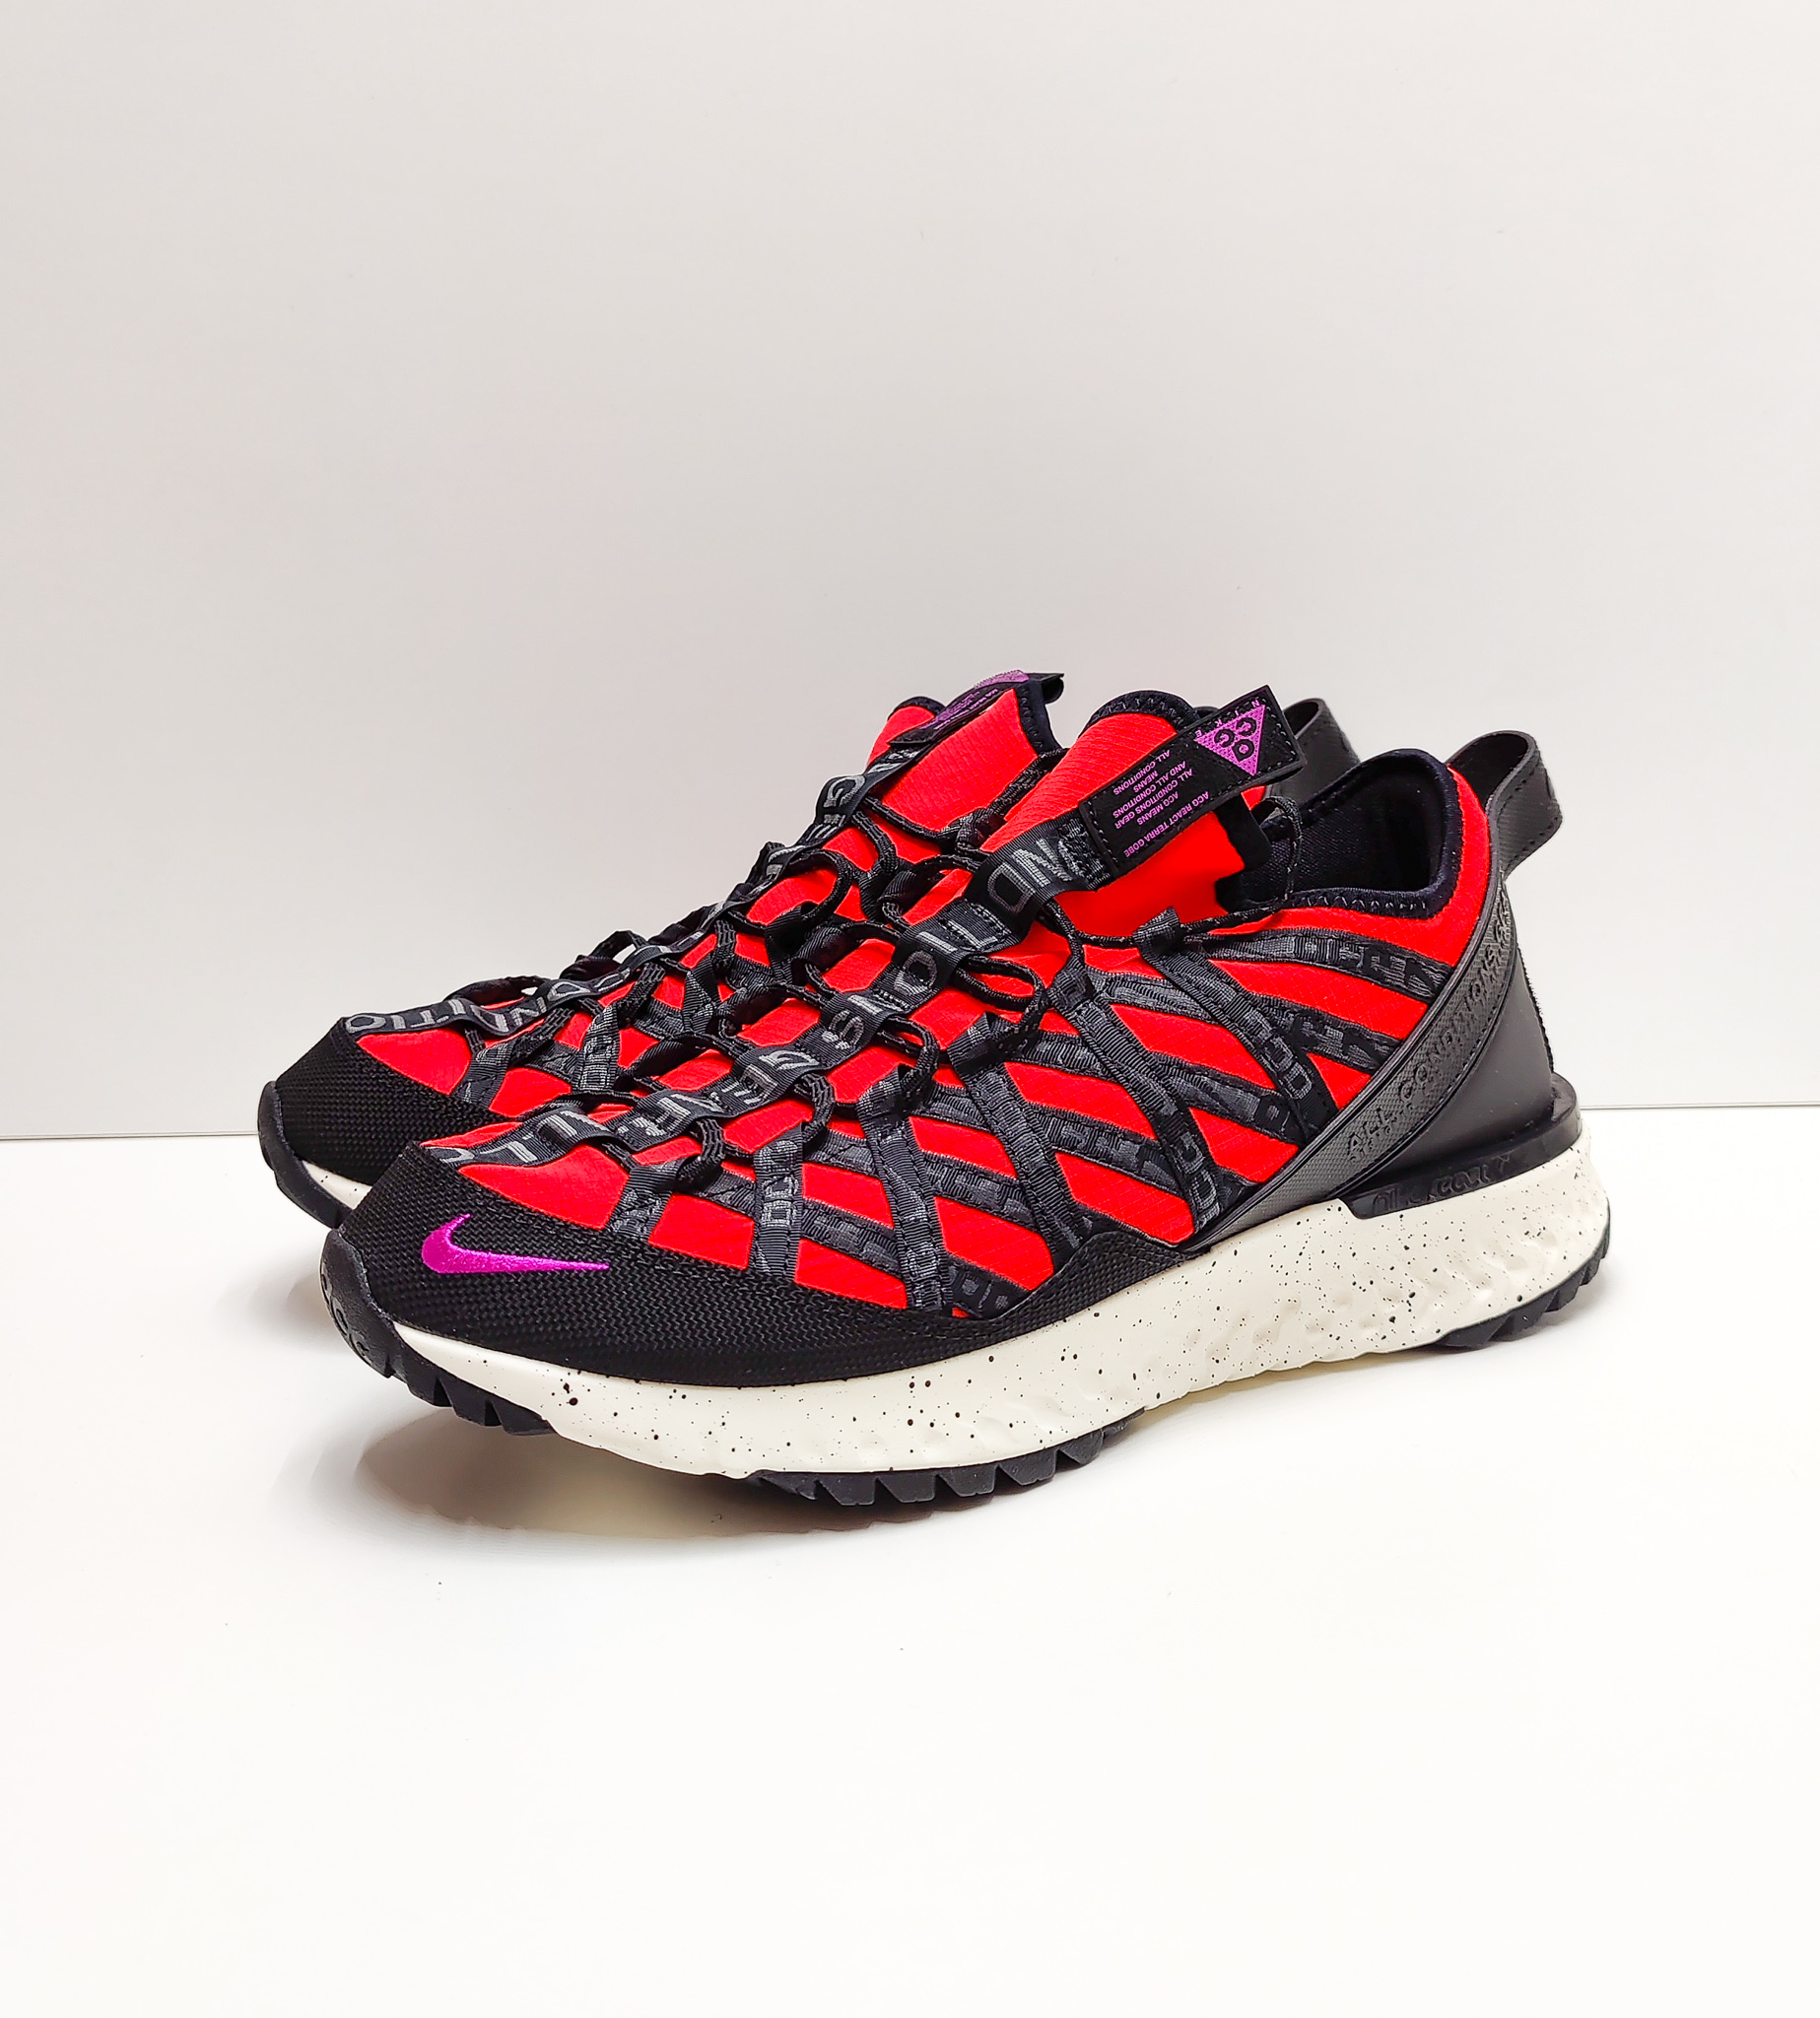 Nike ACG React Terra Gobe Bright Crimson